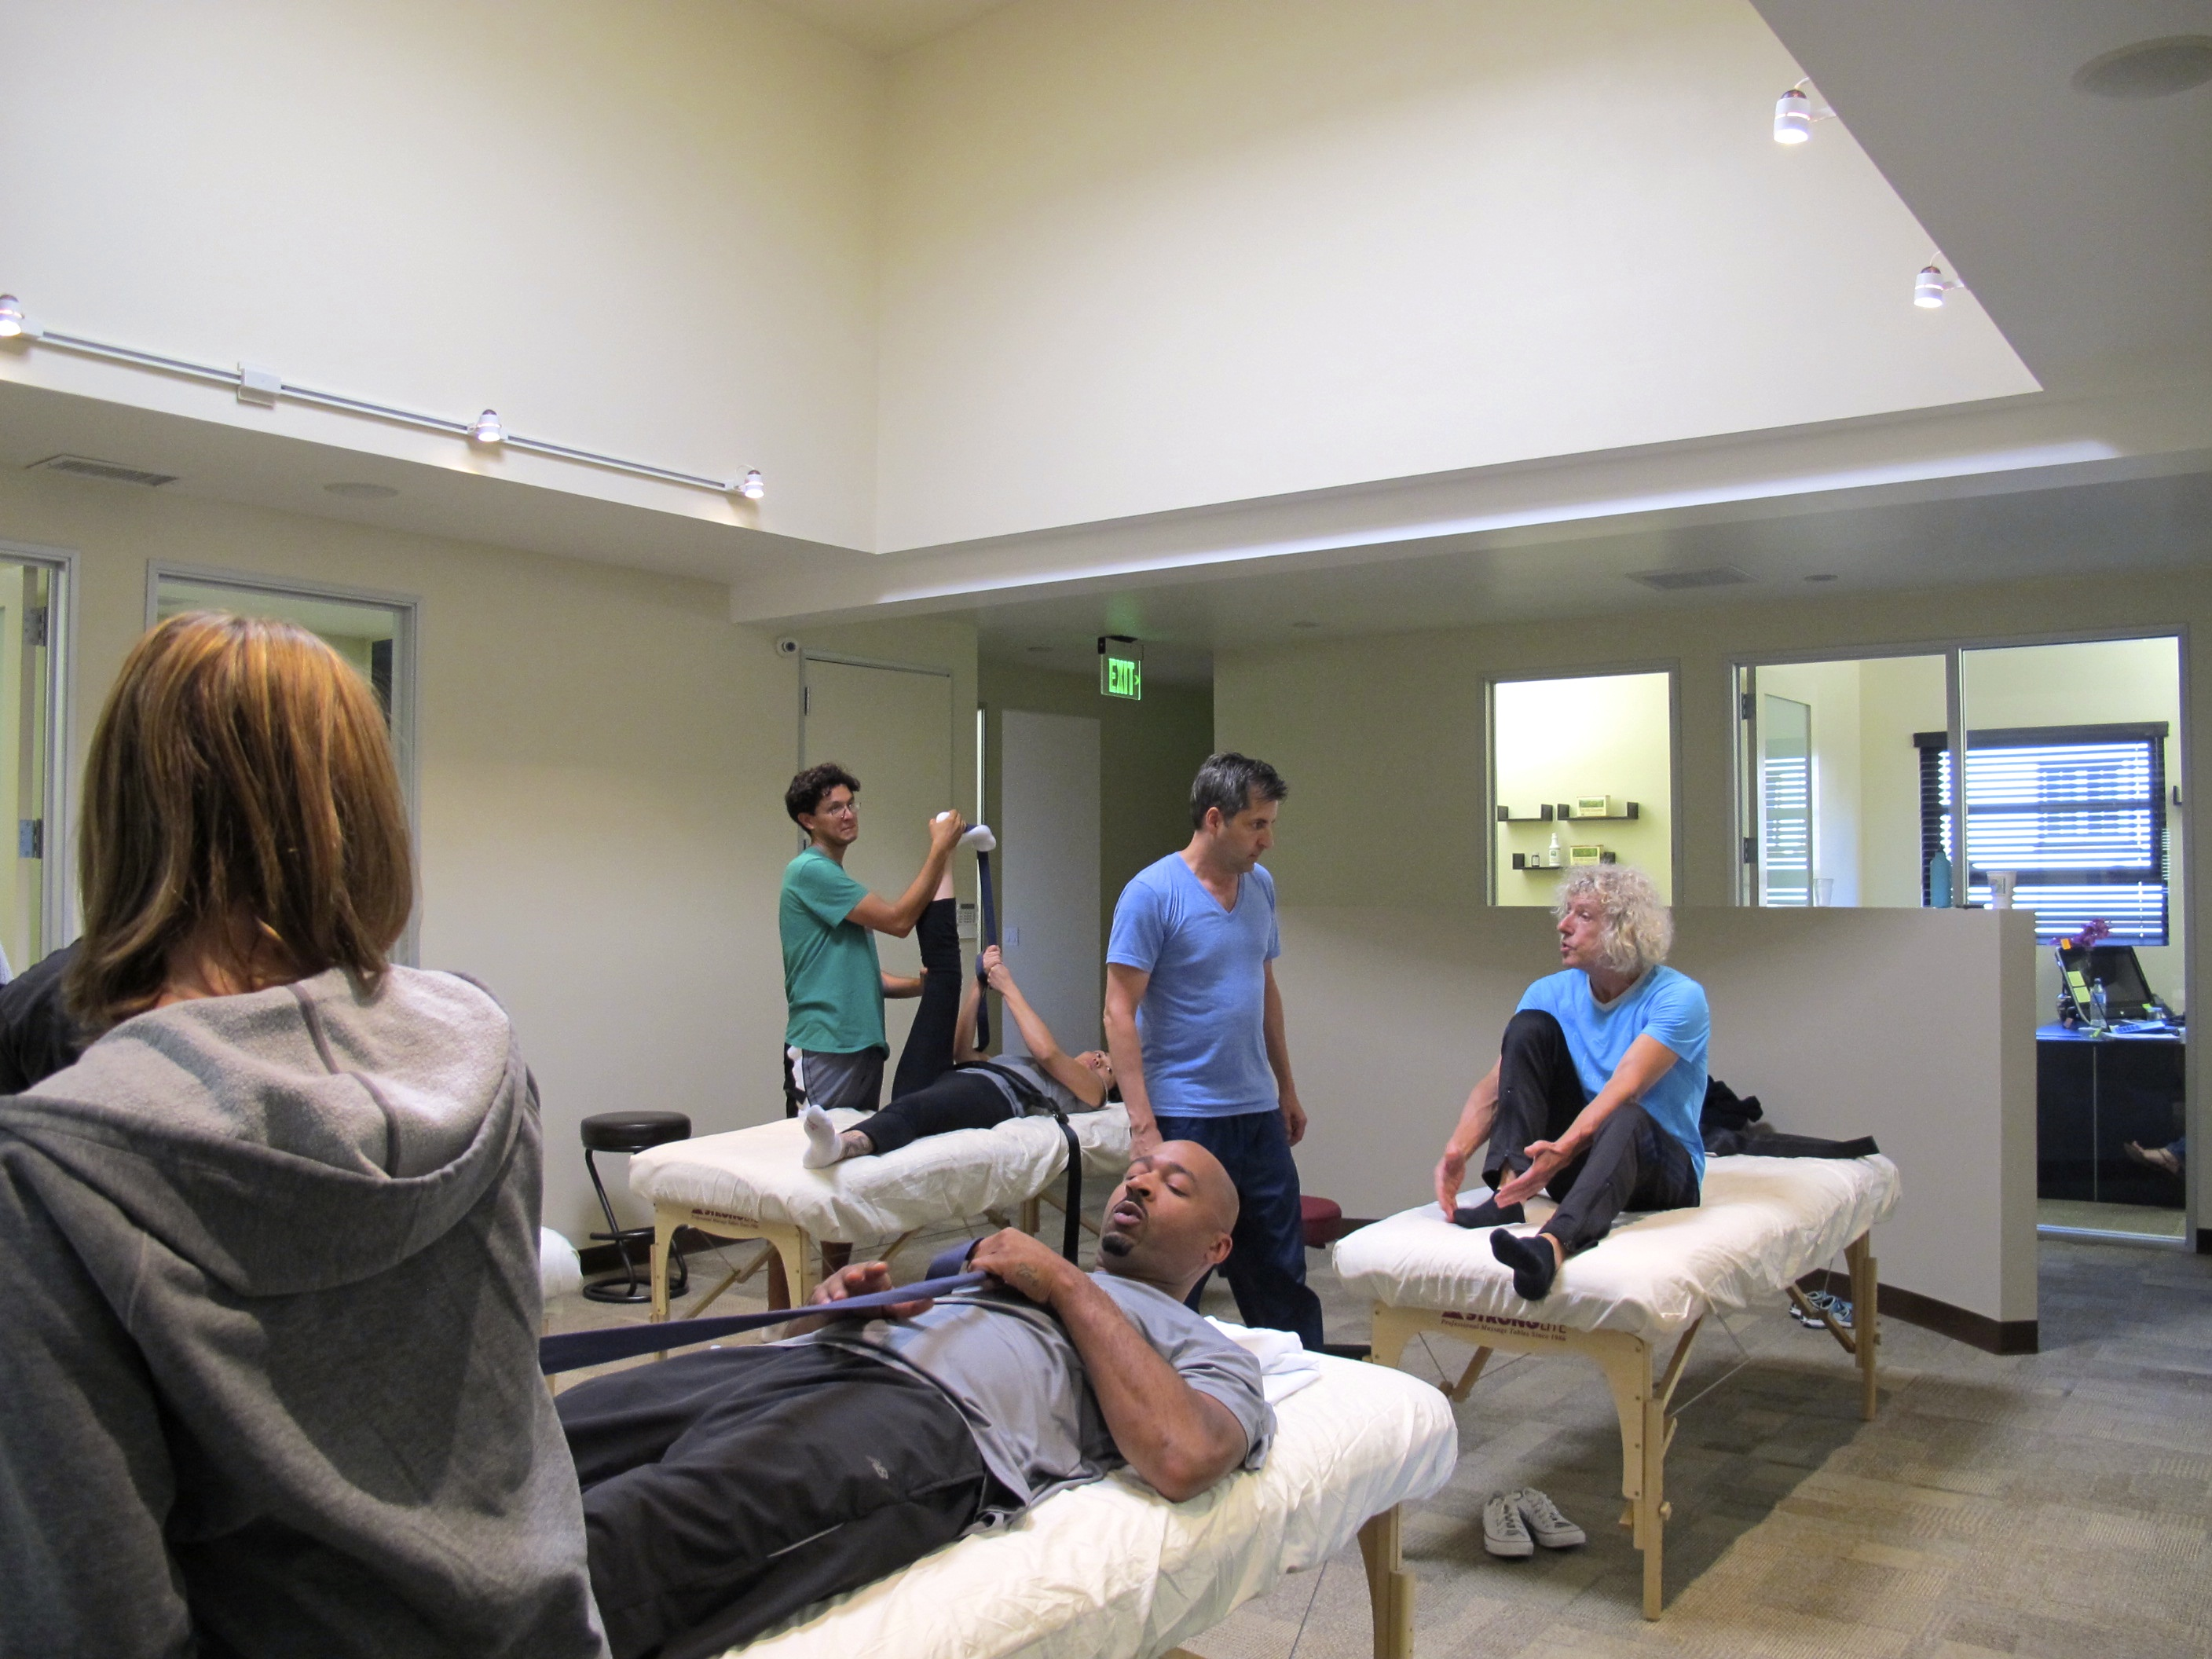 Beverley Hills, training a team of chiropracters and physiotherapists